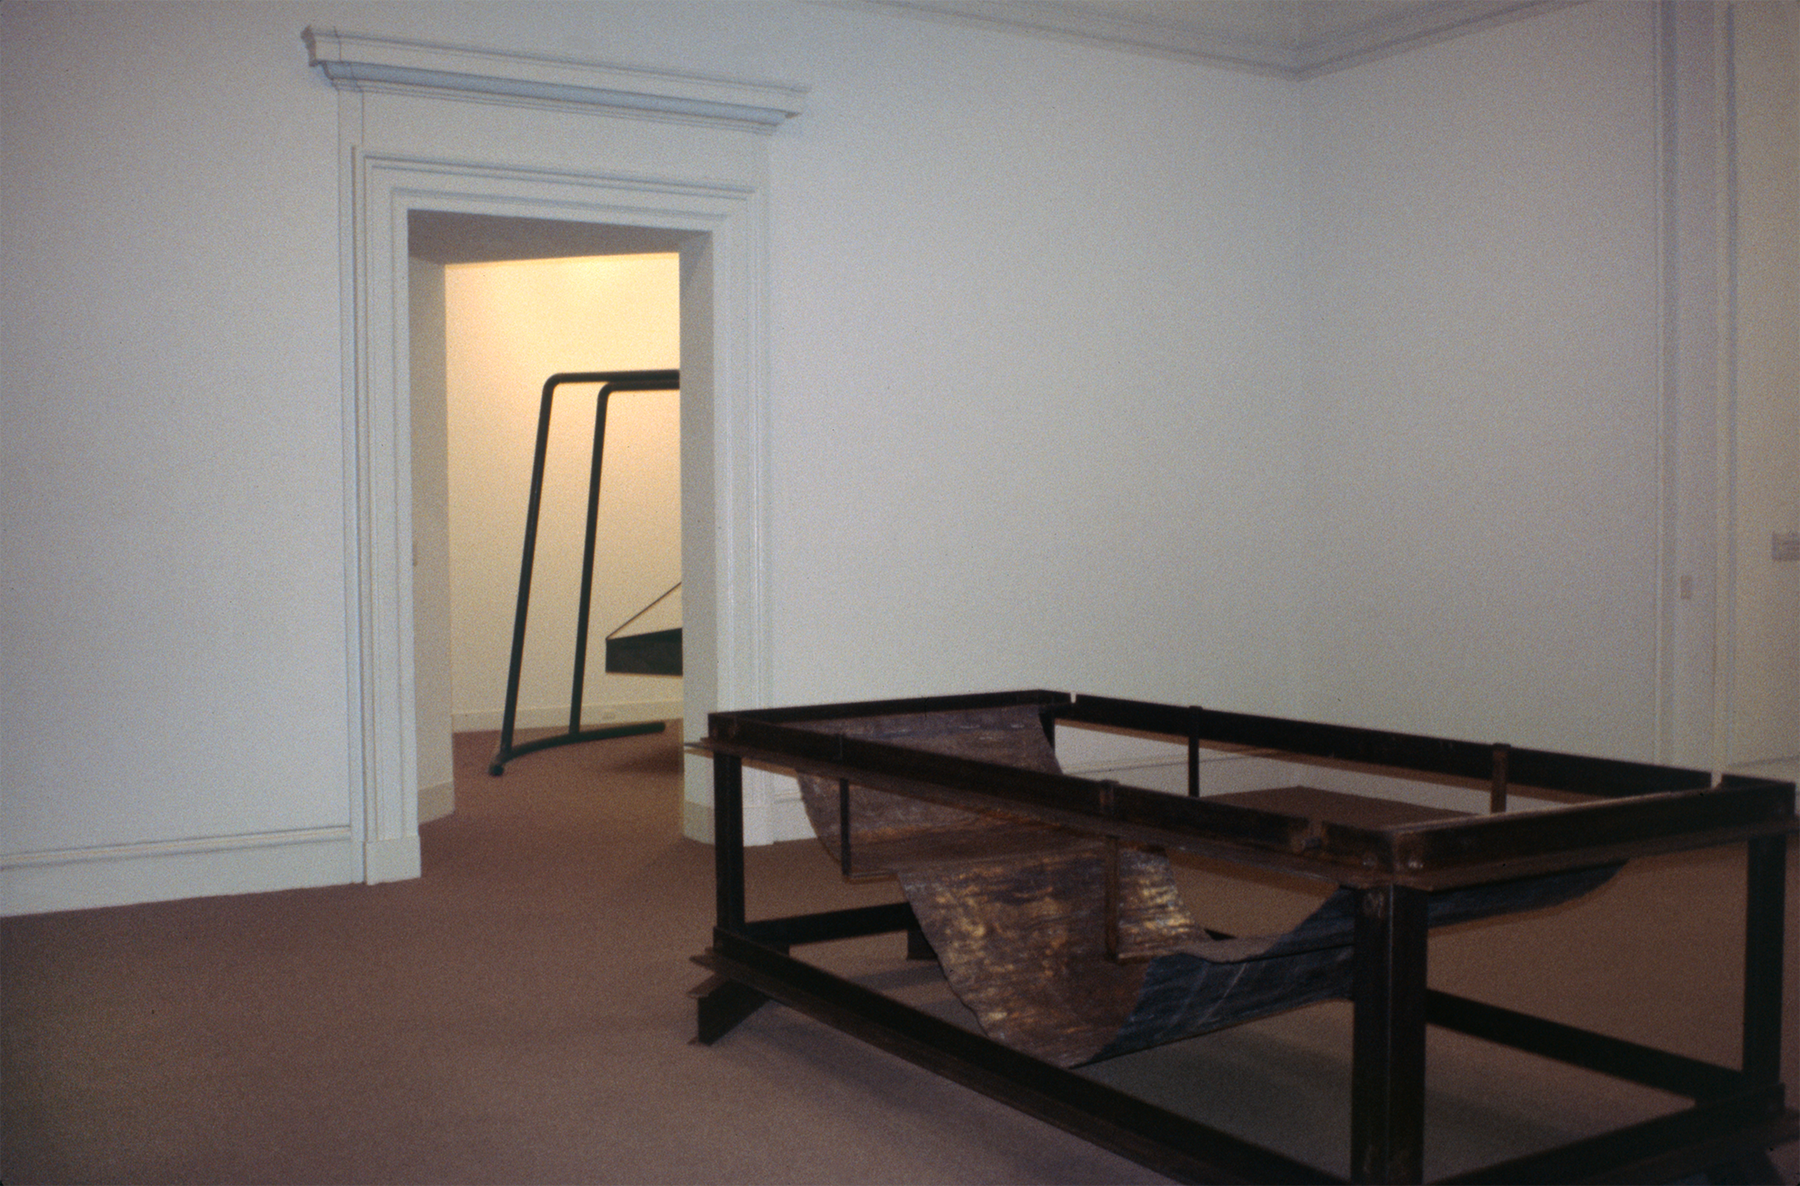 A large, rusted metallic sculpture in a gallery